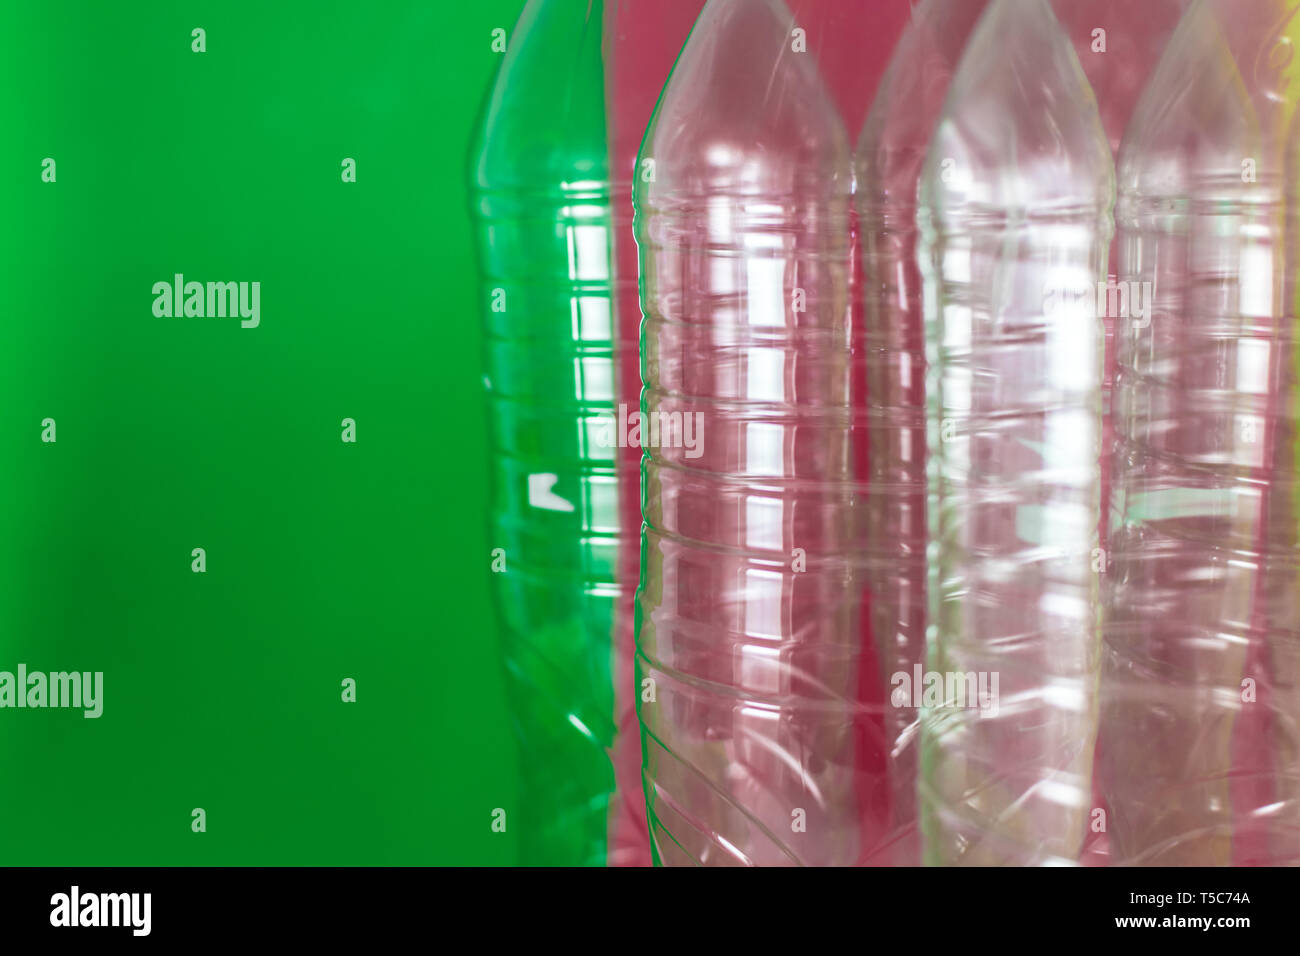 A pack of empty and recyclable plastic water bottles, on a colored vibrant green and wine red background. Reuse, Eco-Friendly, Environment concept - Stock Image